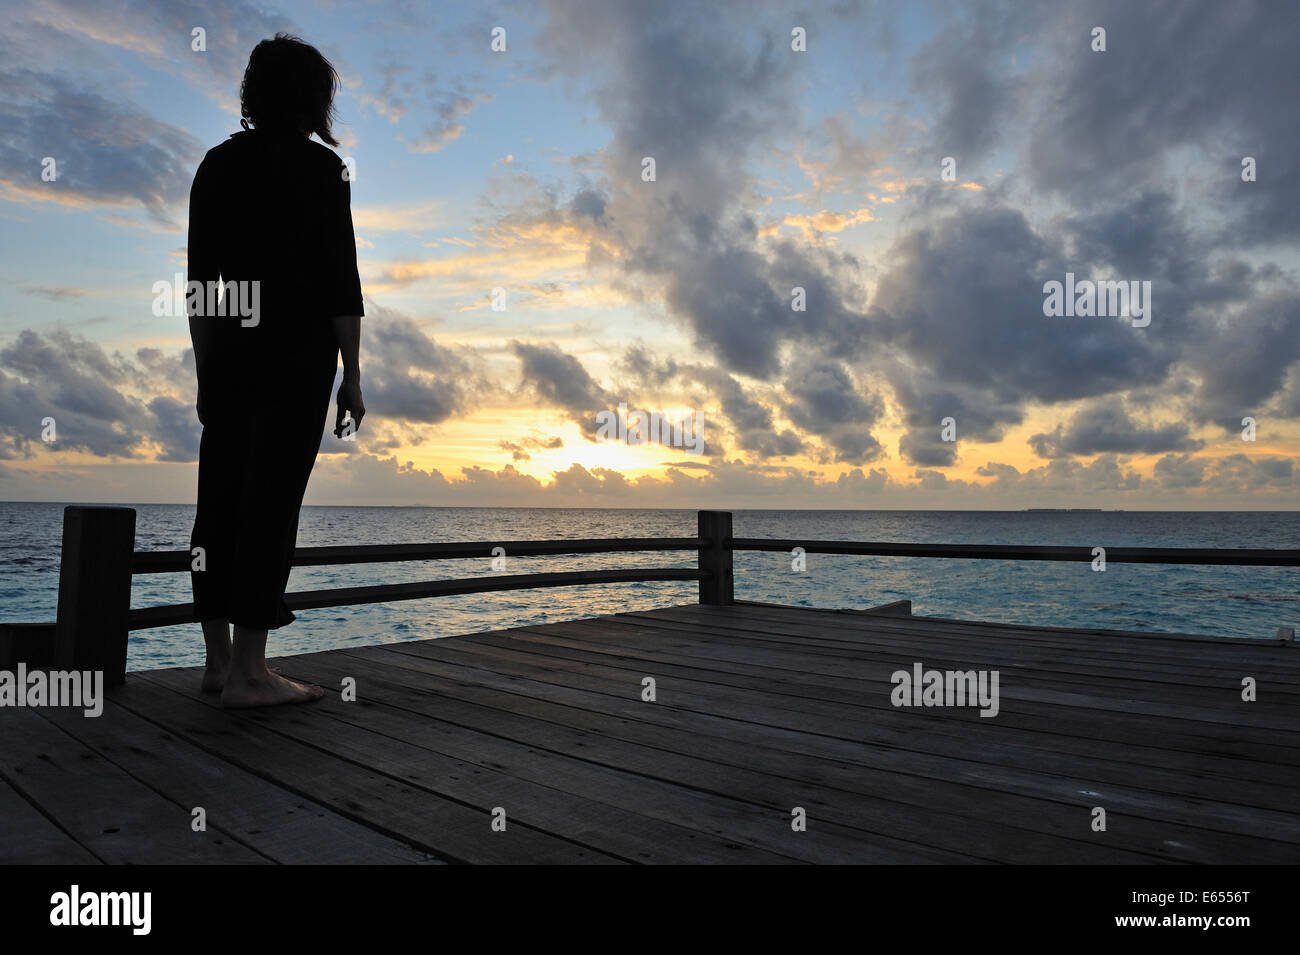 Woman silhouette - woman contemplating the sunrise, Island of Borneo, Sabah State, Malaysia - Stock Image